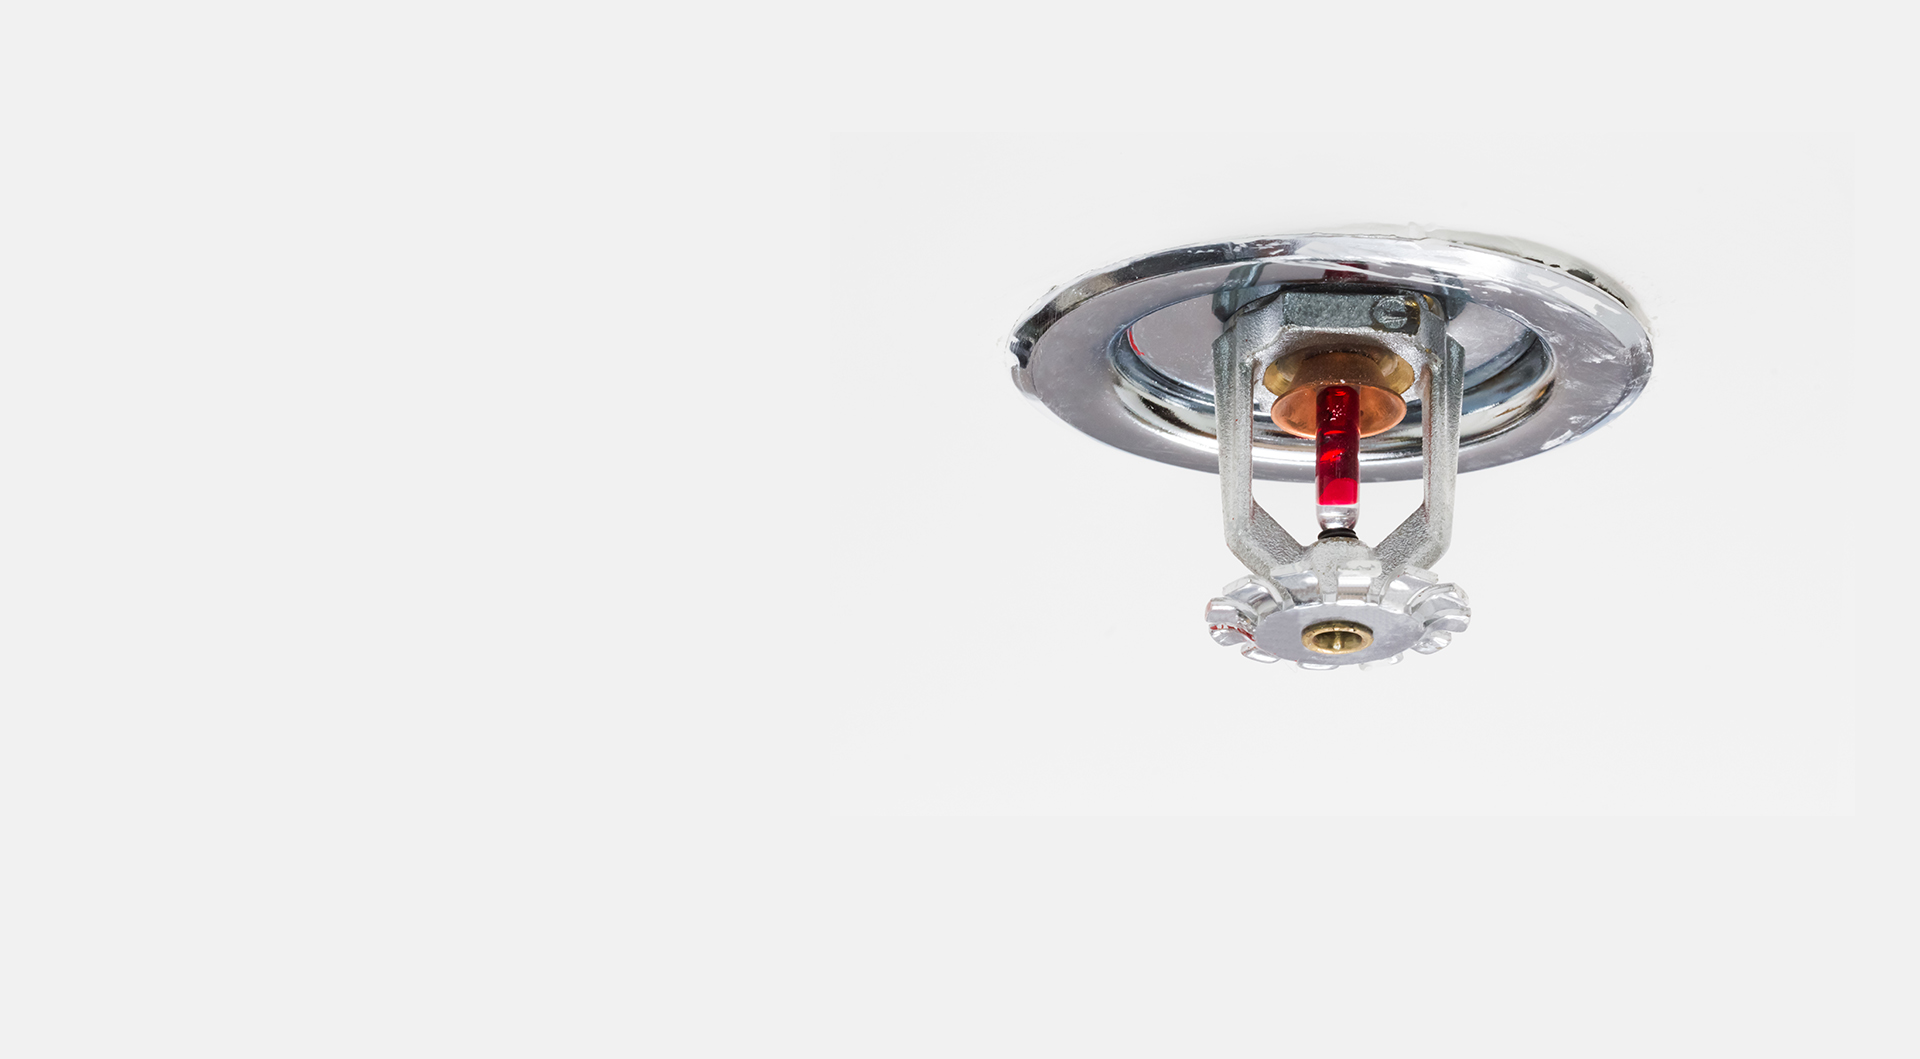 Fire Sprinkler Contractor of Choice